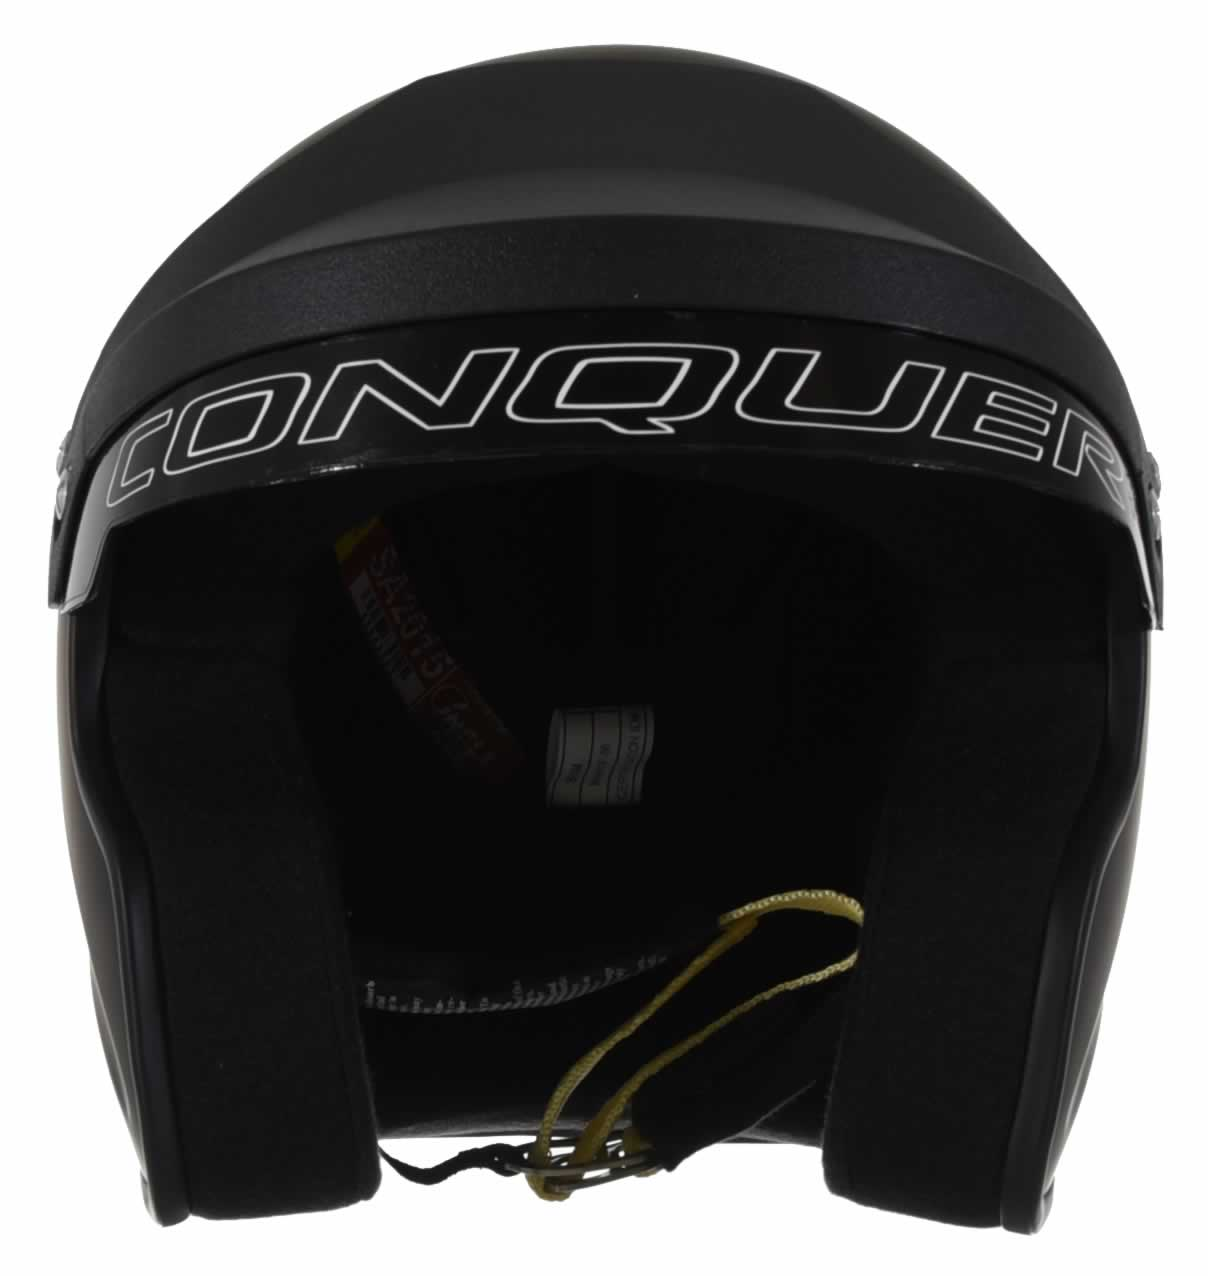 Conquer-Snell-SA2015-Approved-Open-Face-Racing-Helmet thumbnail 17